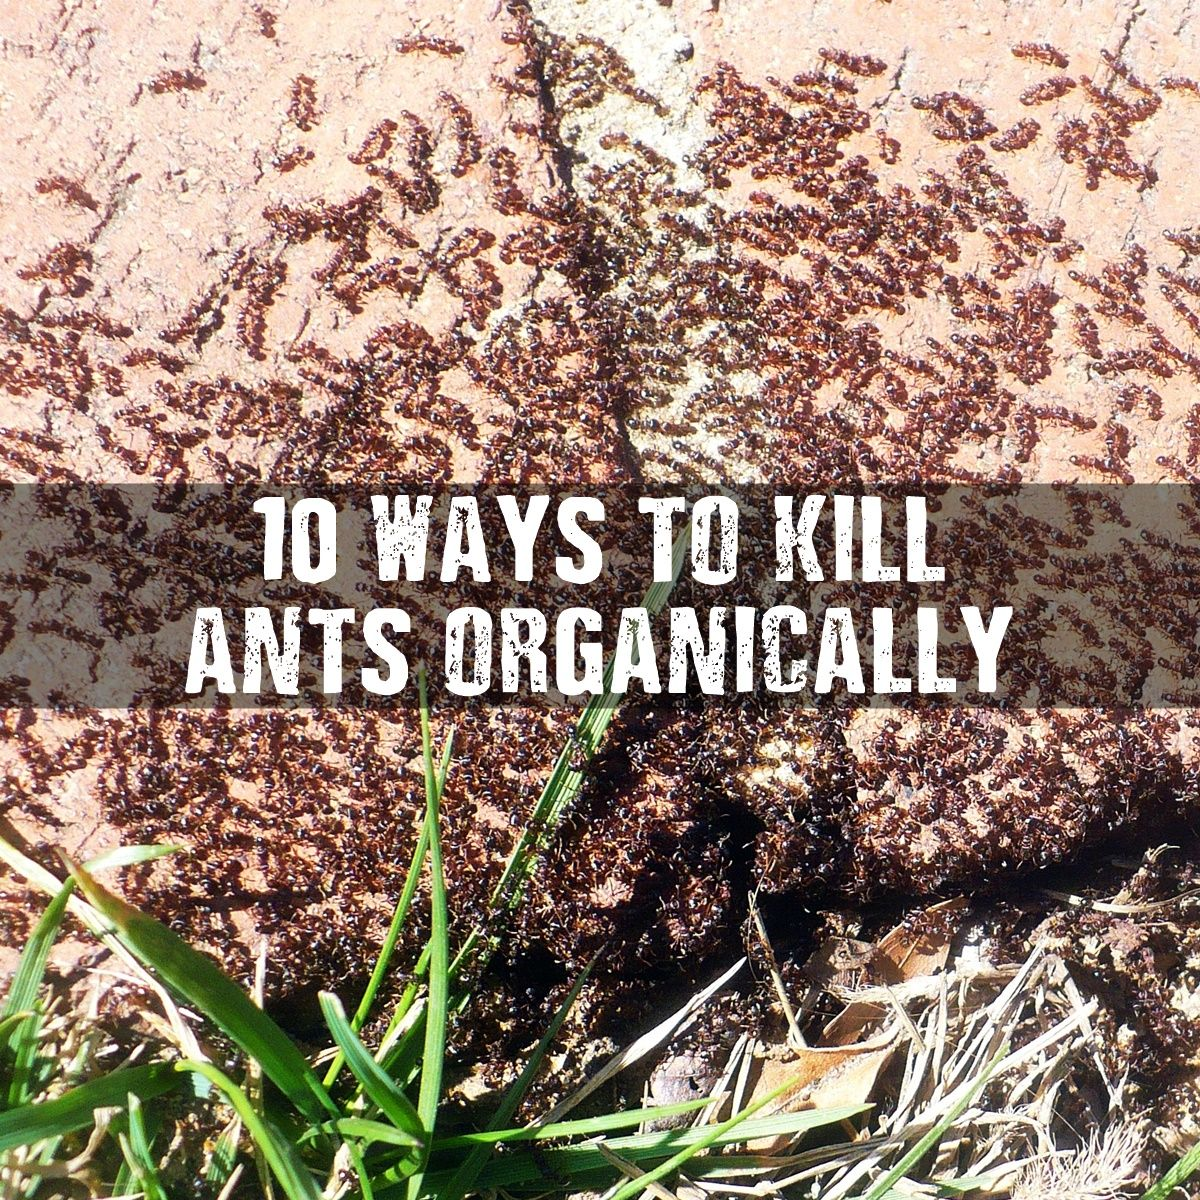 10 Ways To Kill Ants Organically. If You Want To Kill Ants The Safe Way,  Organically, This Is Your Post! Donu0027t Buy Store Products Again.